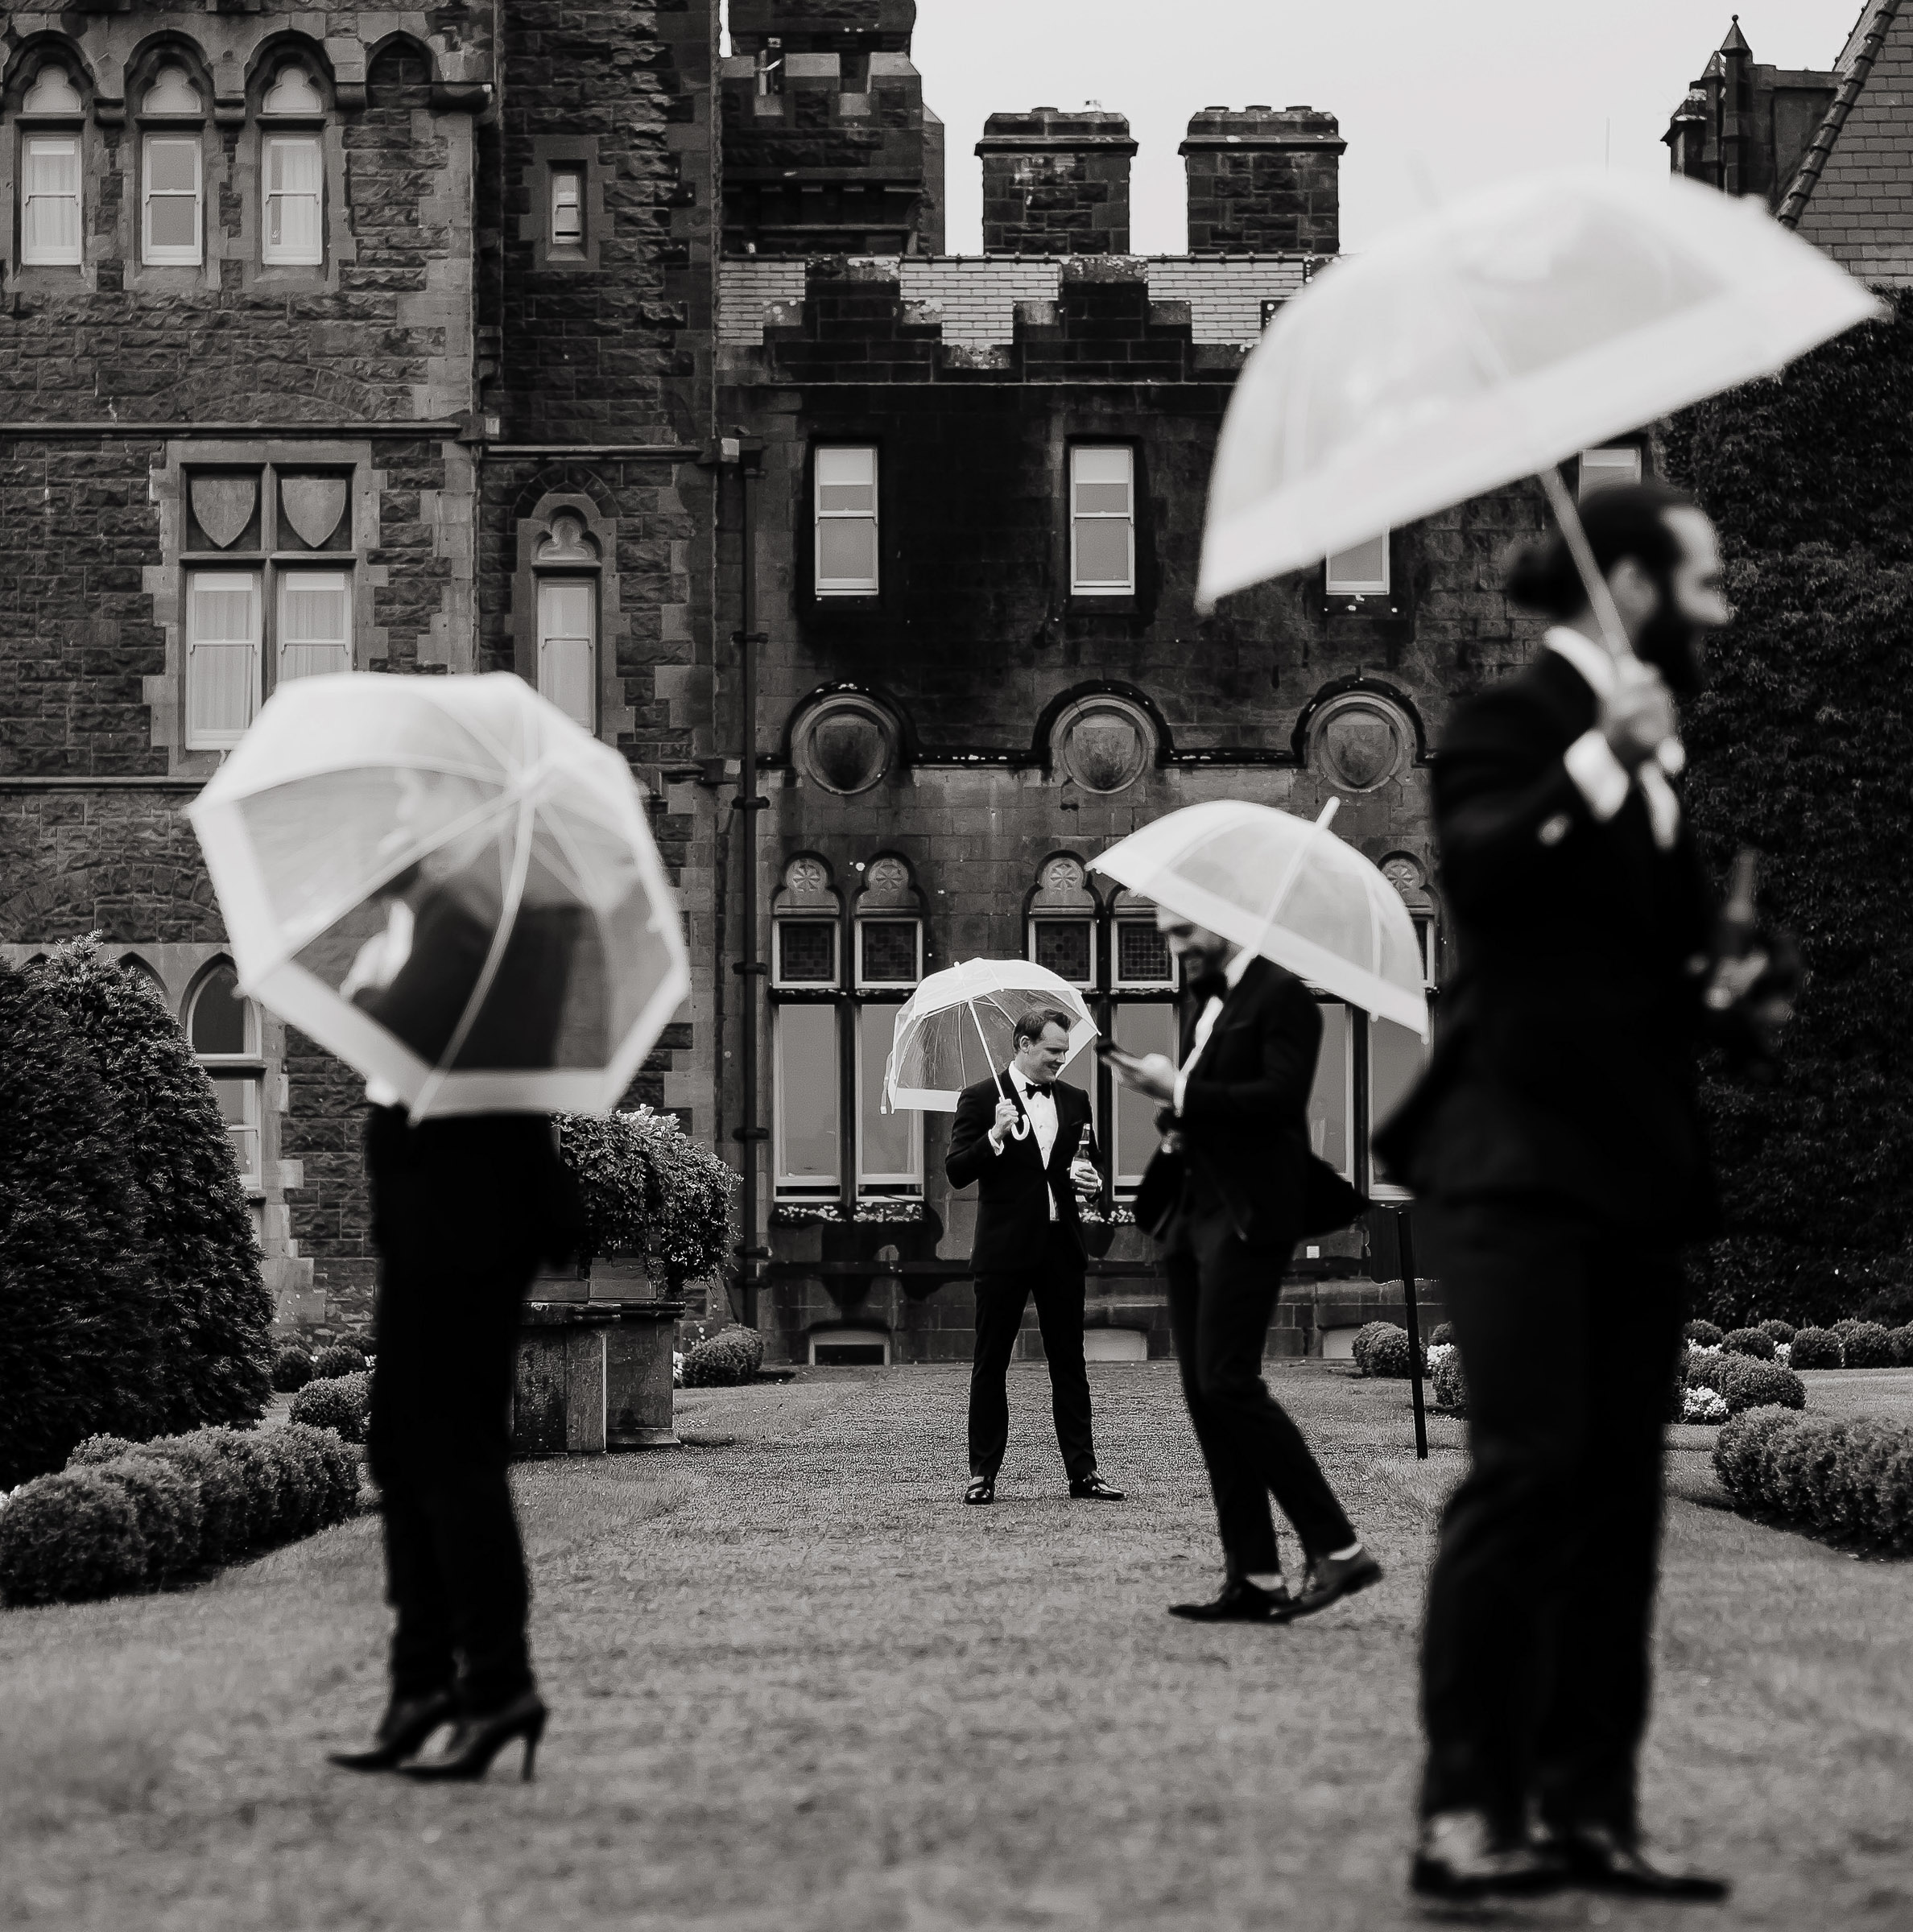 Bridal party with umbrellas - photo by The Brenizers